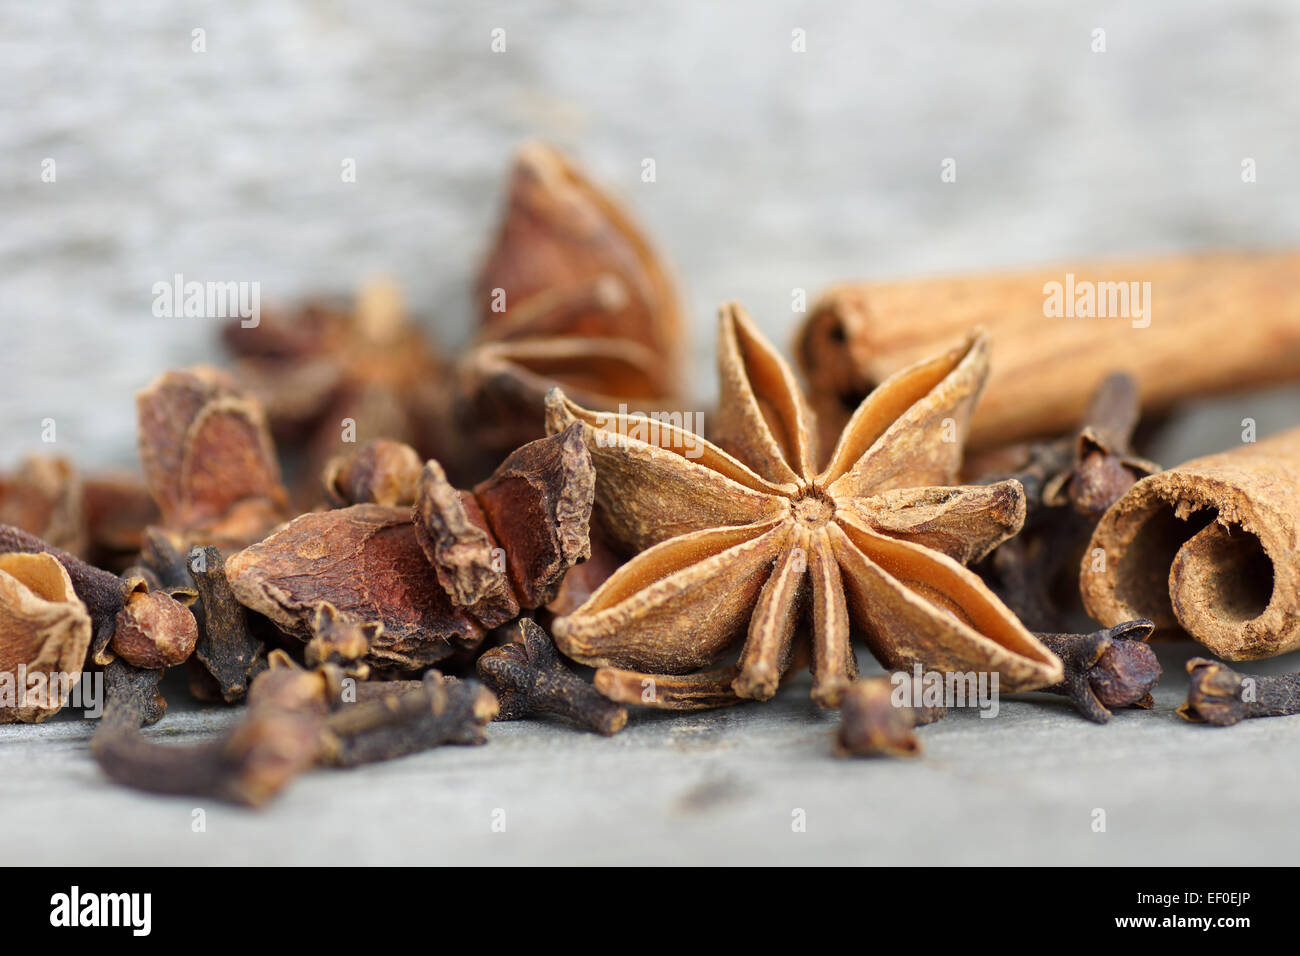 Anise star, cinnamon sticks, and cloves on old grey wood - Stock Image